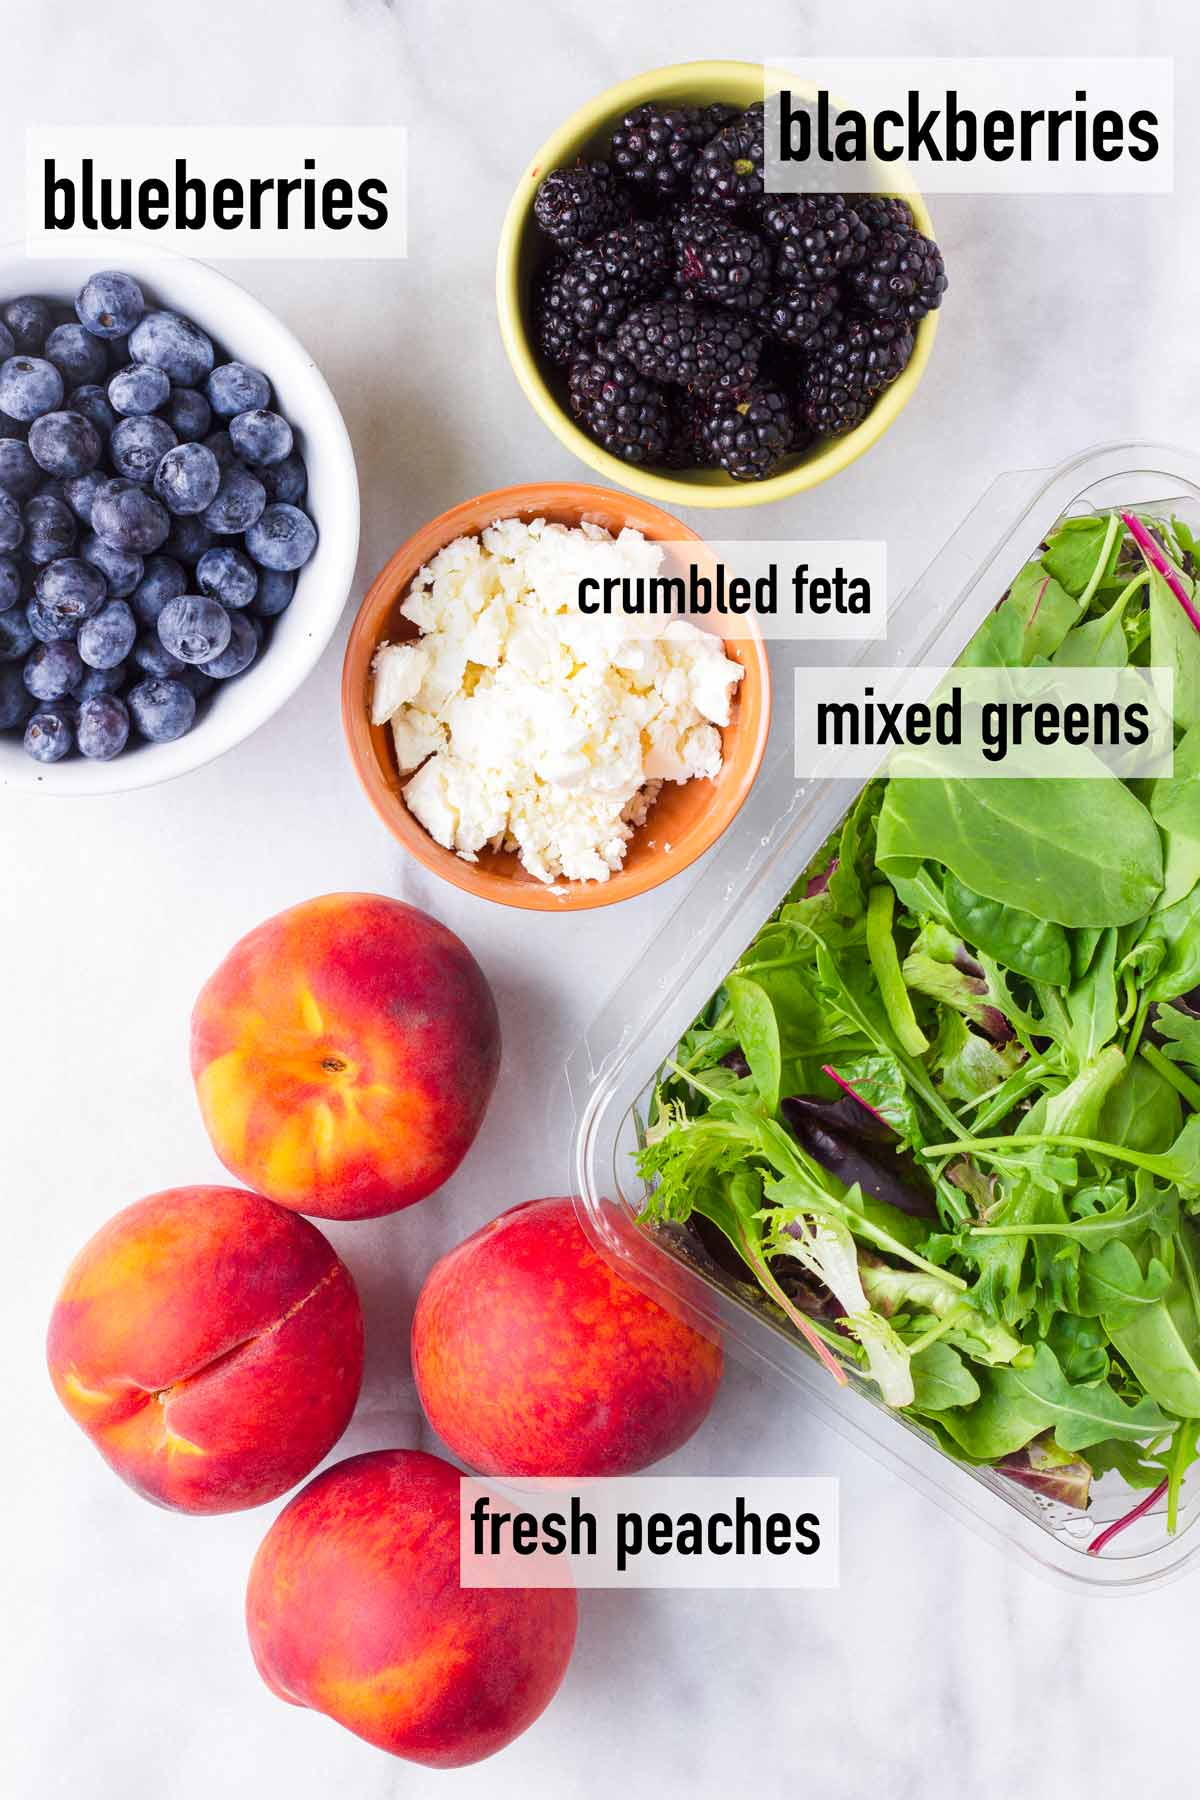 ingredients including berries, peaches, feta, and mixed greens